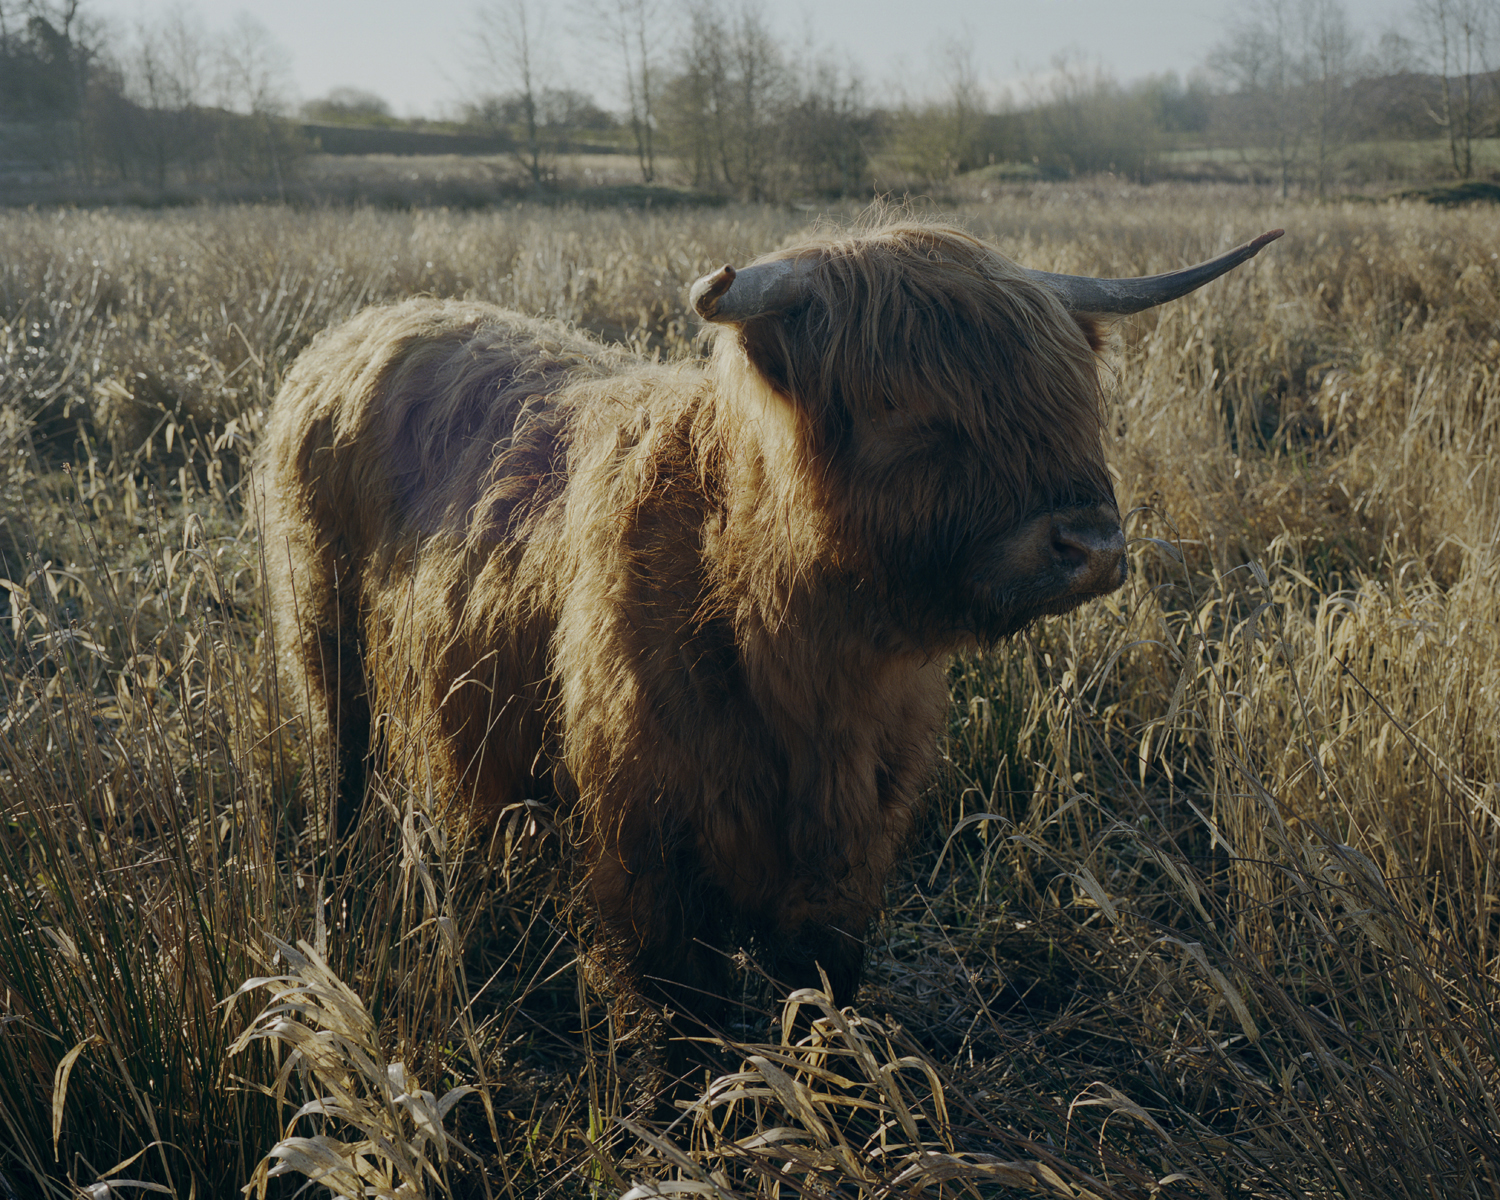 A Scottish Highland cow bred in Northumberland, England.